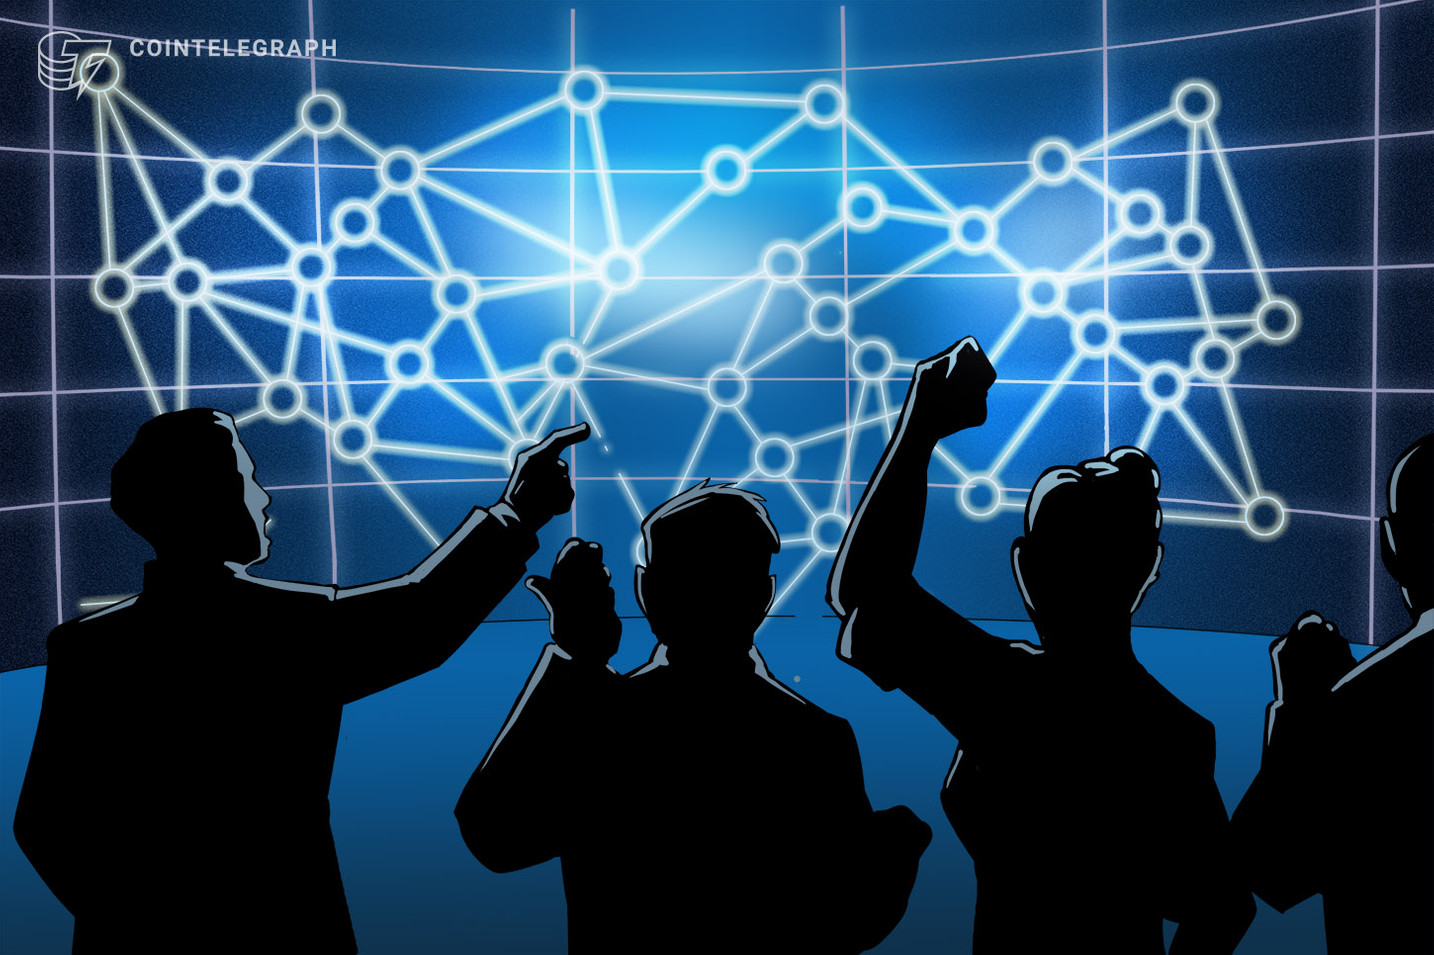 Business Models Should Be 'Re-Imaged' for Blockchain, Says Barclays Rep